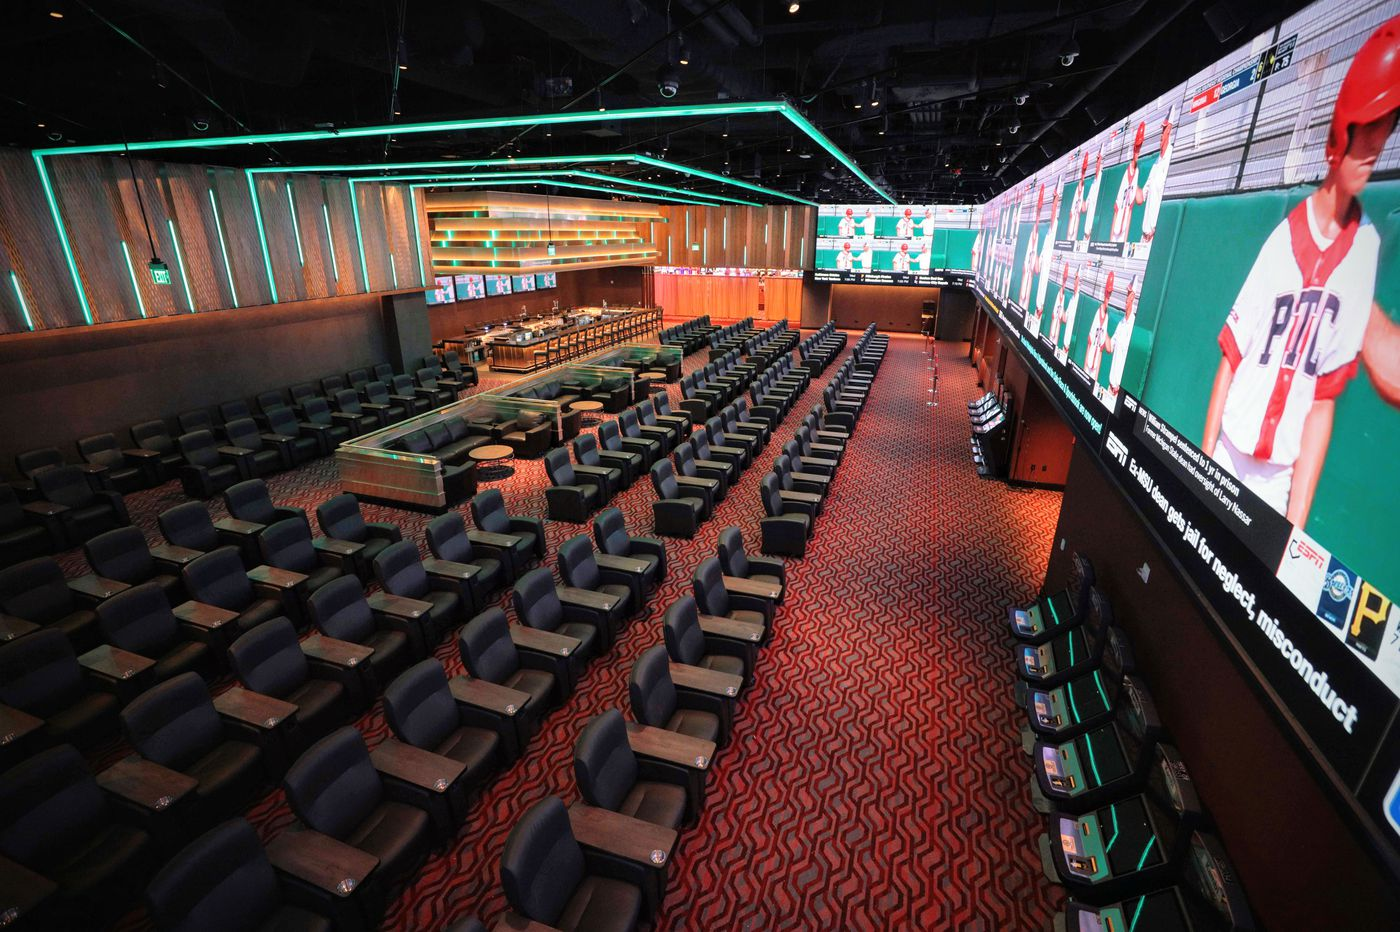 As Eagles preseason opens, Parx Casino to match bets for early birds at new sportsbook